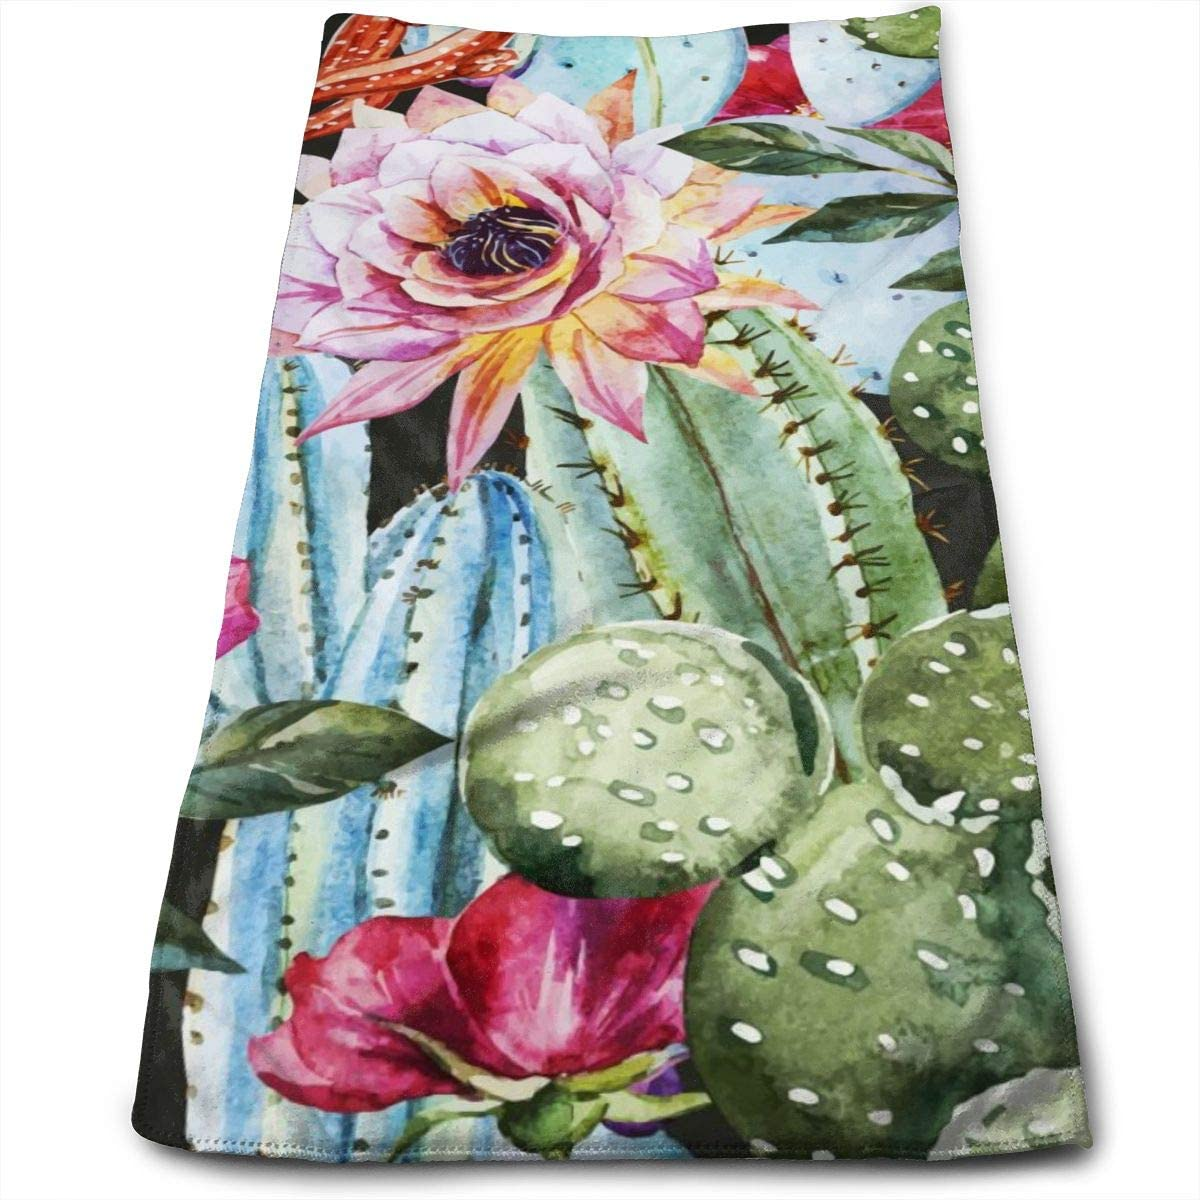 Bright Purchase Outlet sale feature Colorful Flowers Roses Cactus Towels G Hand Bathroom Soft